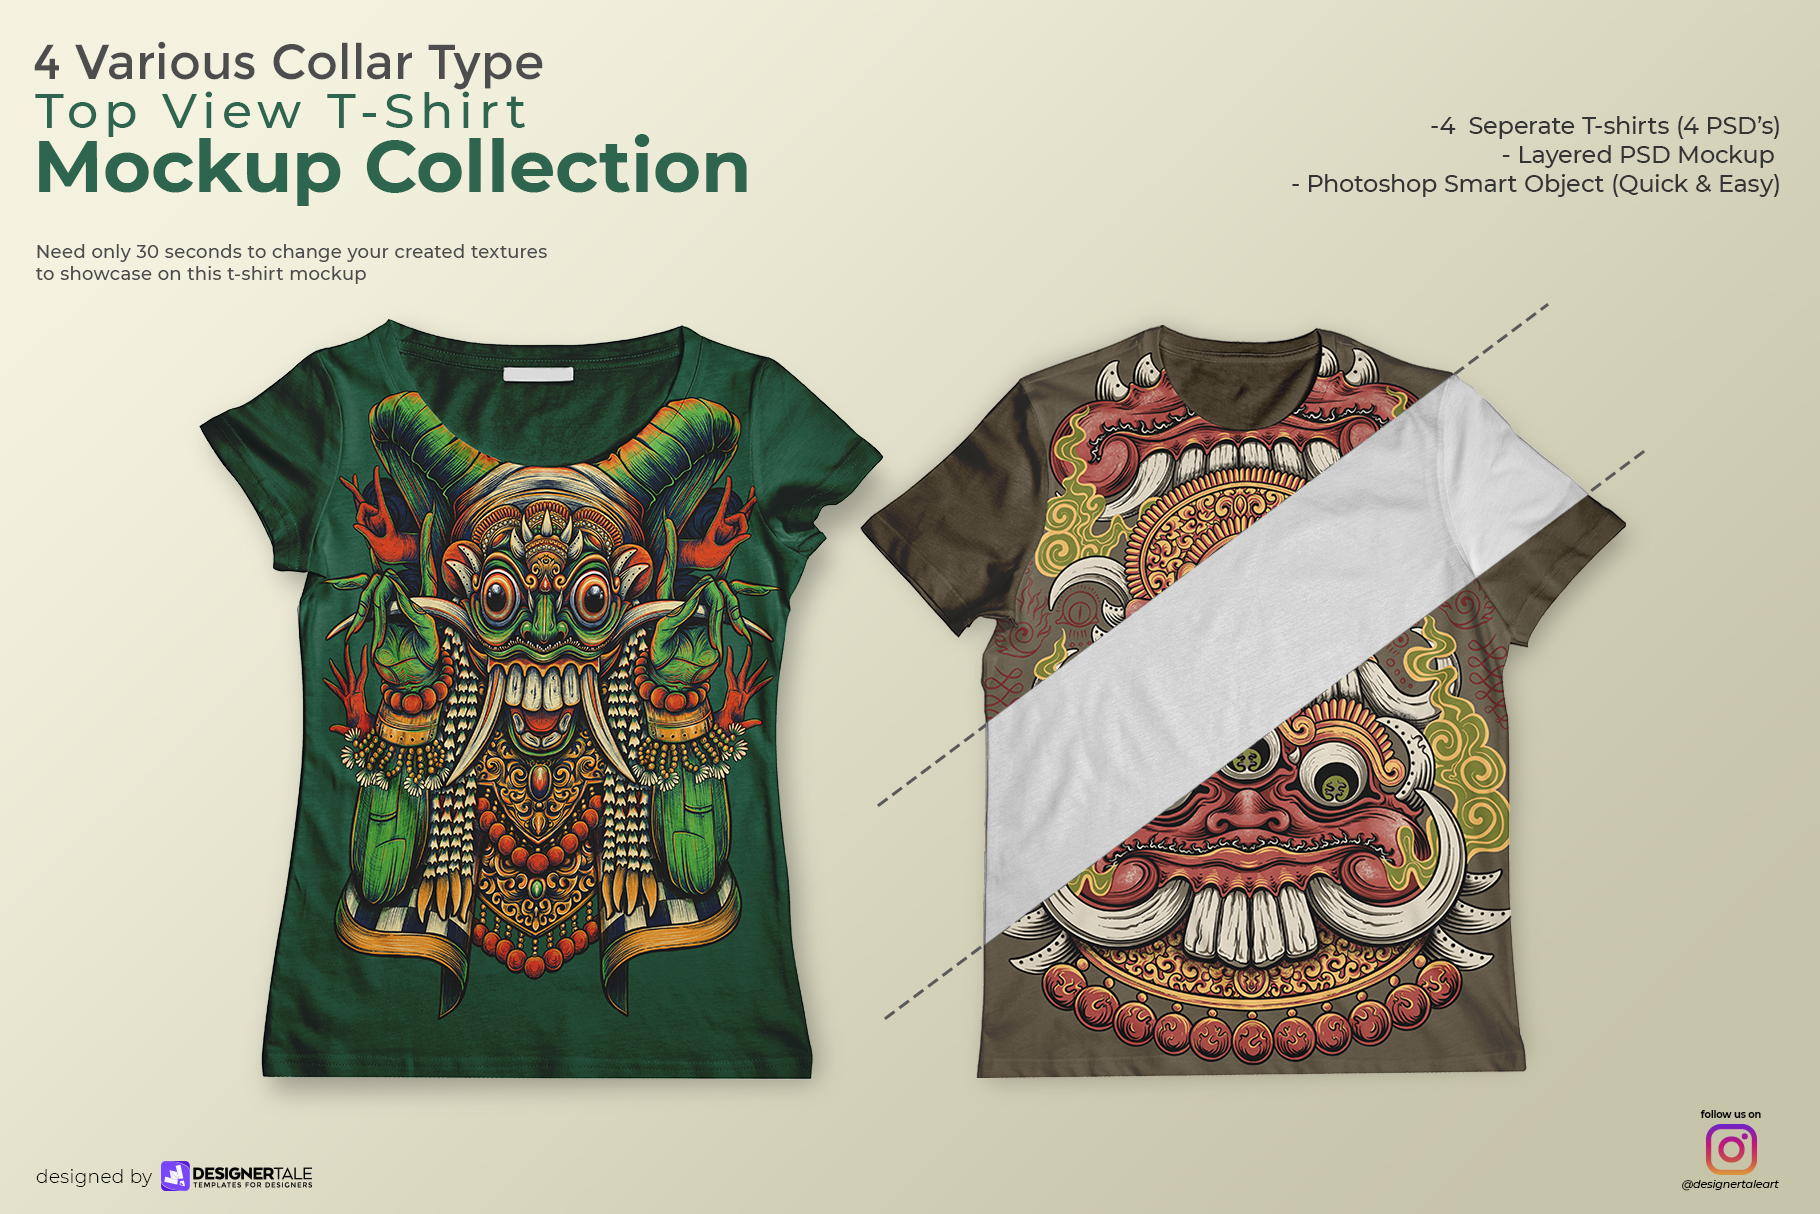 multiple-collar-type-t-shirt-mockup-image-preview-1